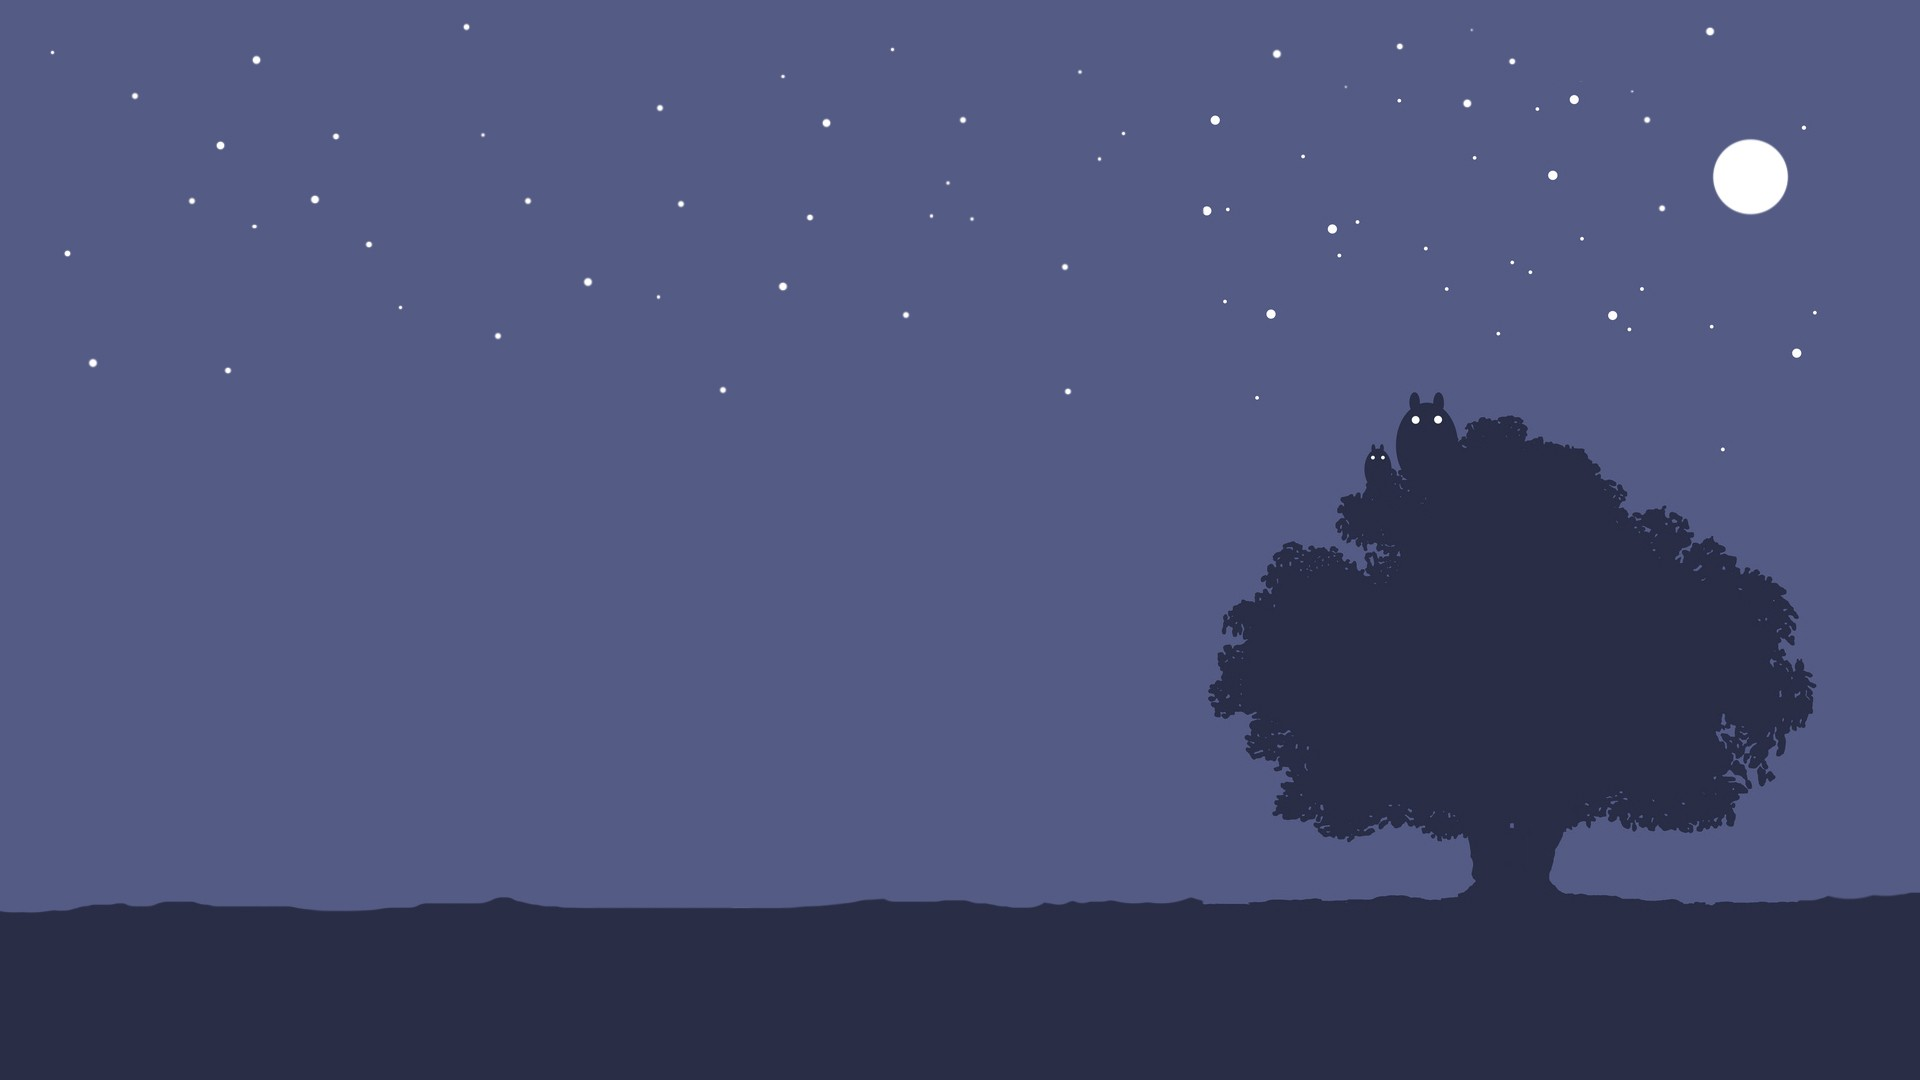 Ag17 Cute Minimal Panda Dark Illust Art: Totoro Background ·① Download Free Awesome High Resolution